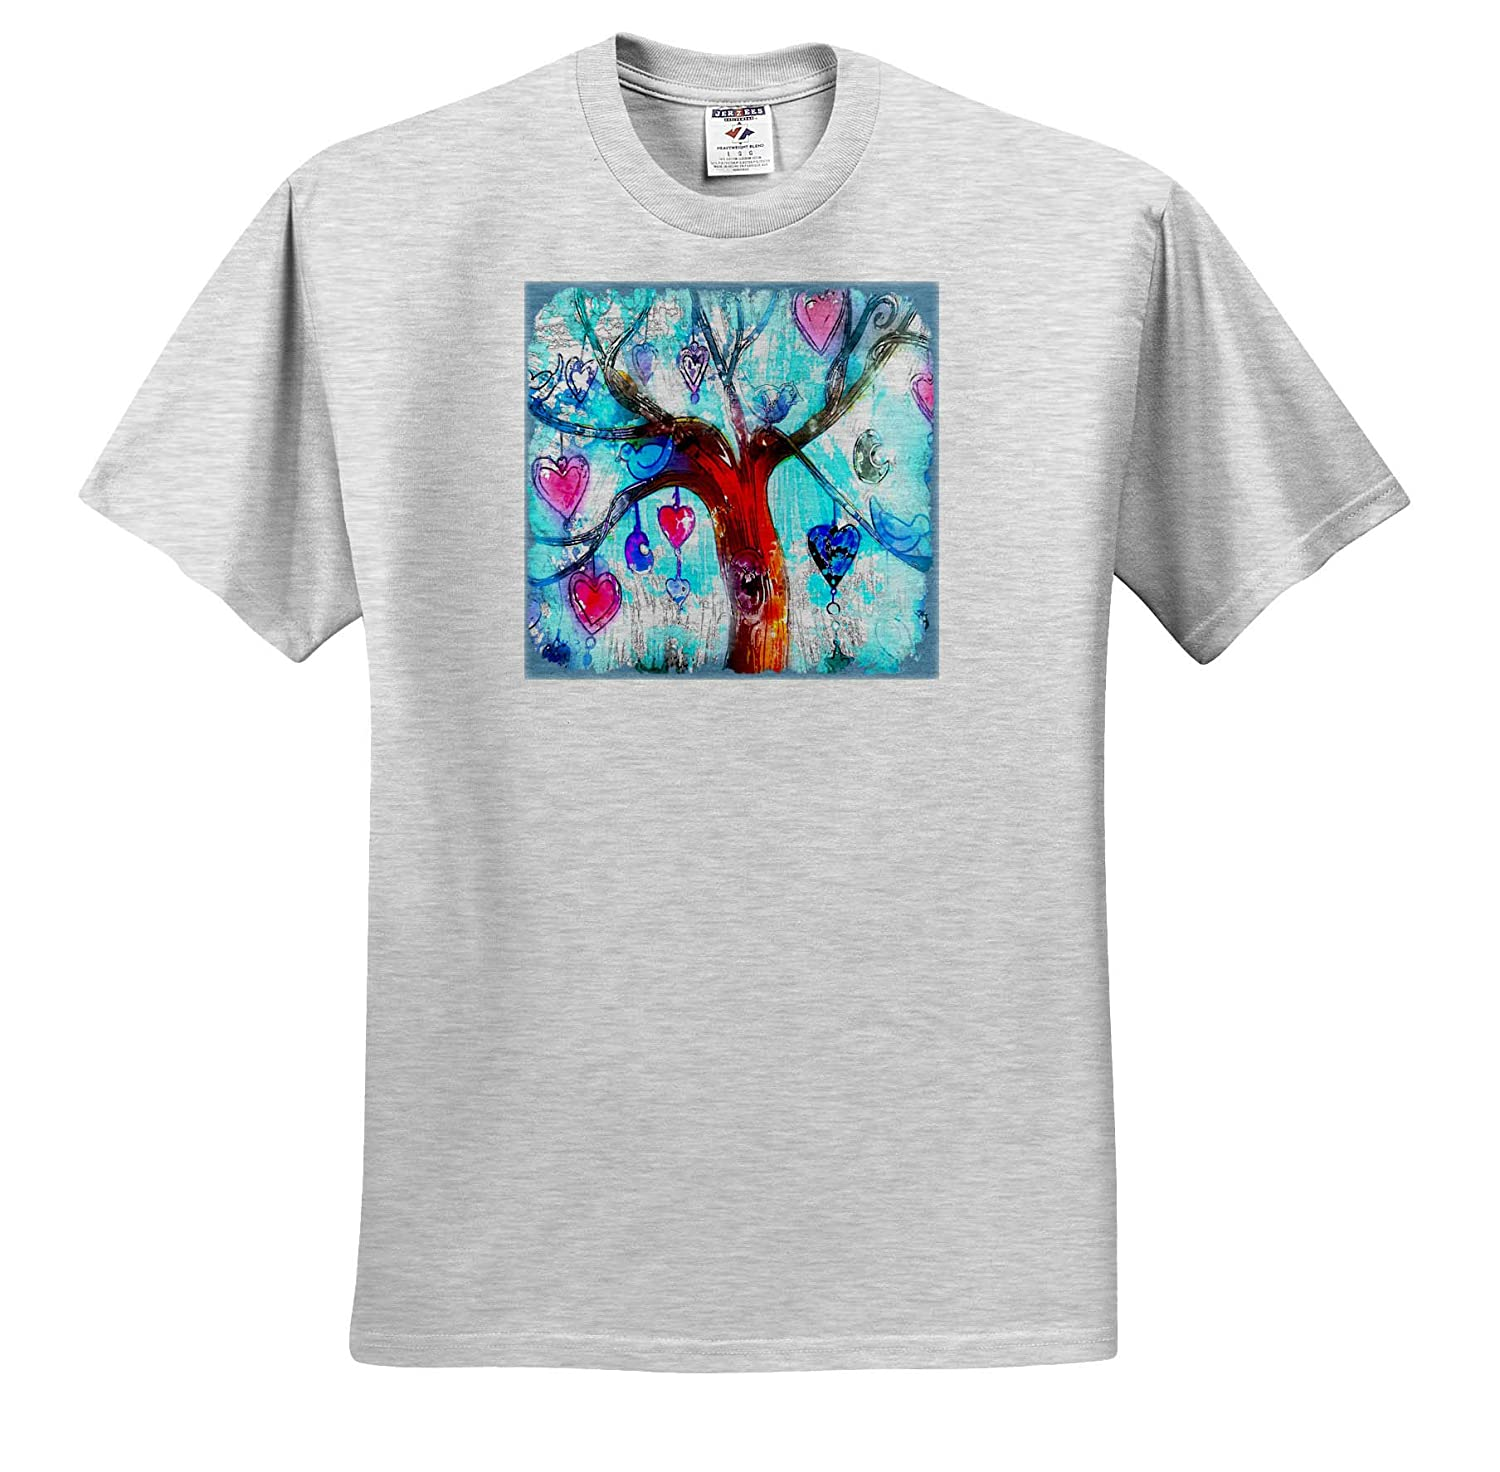 3dRose Lens Art by Florene Image of Painting of Hearts and Bird On A Tree T-Shirts Tree Art